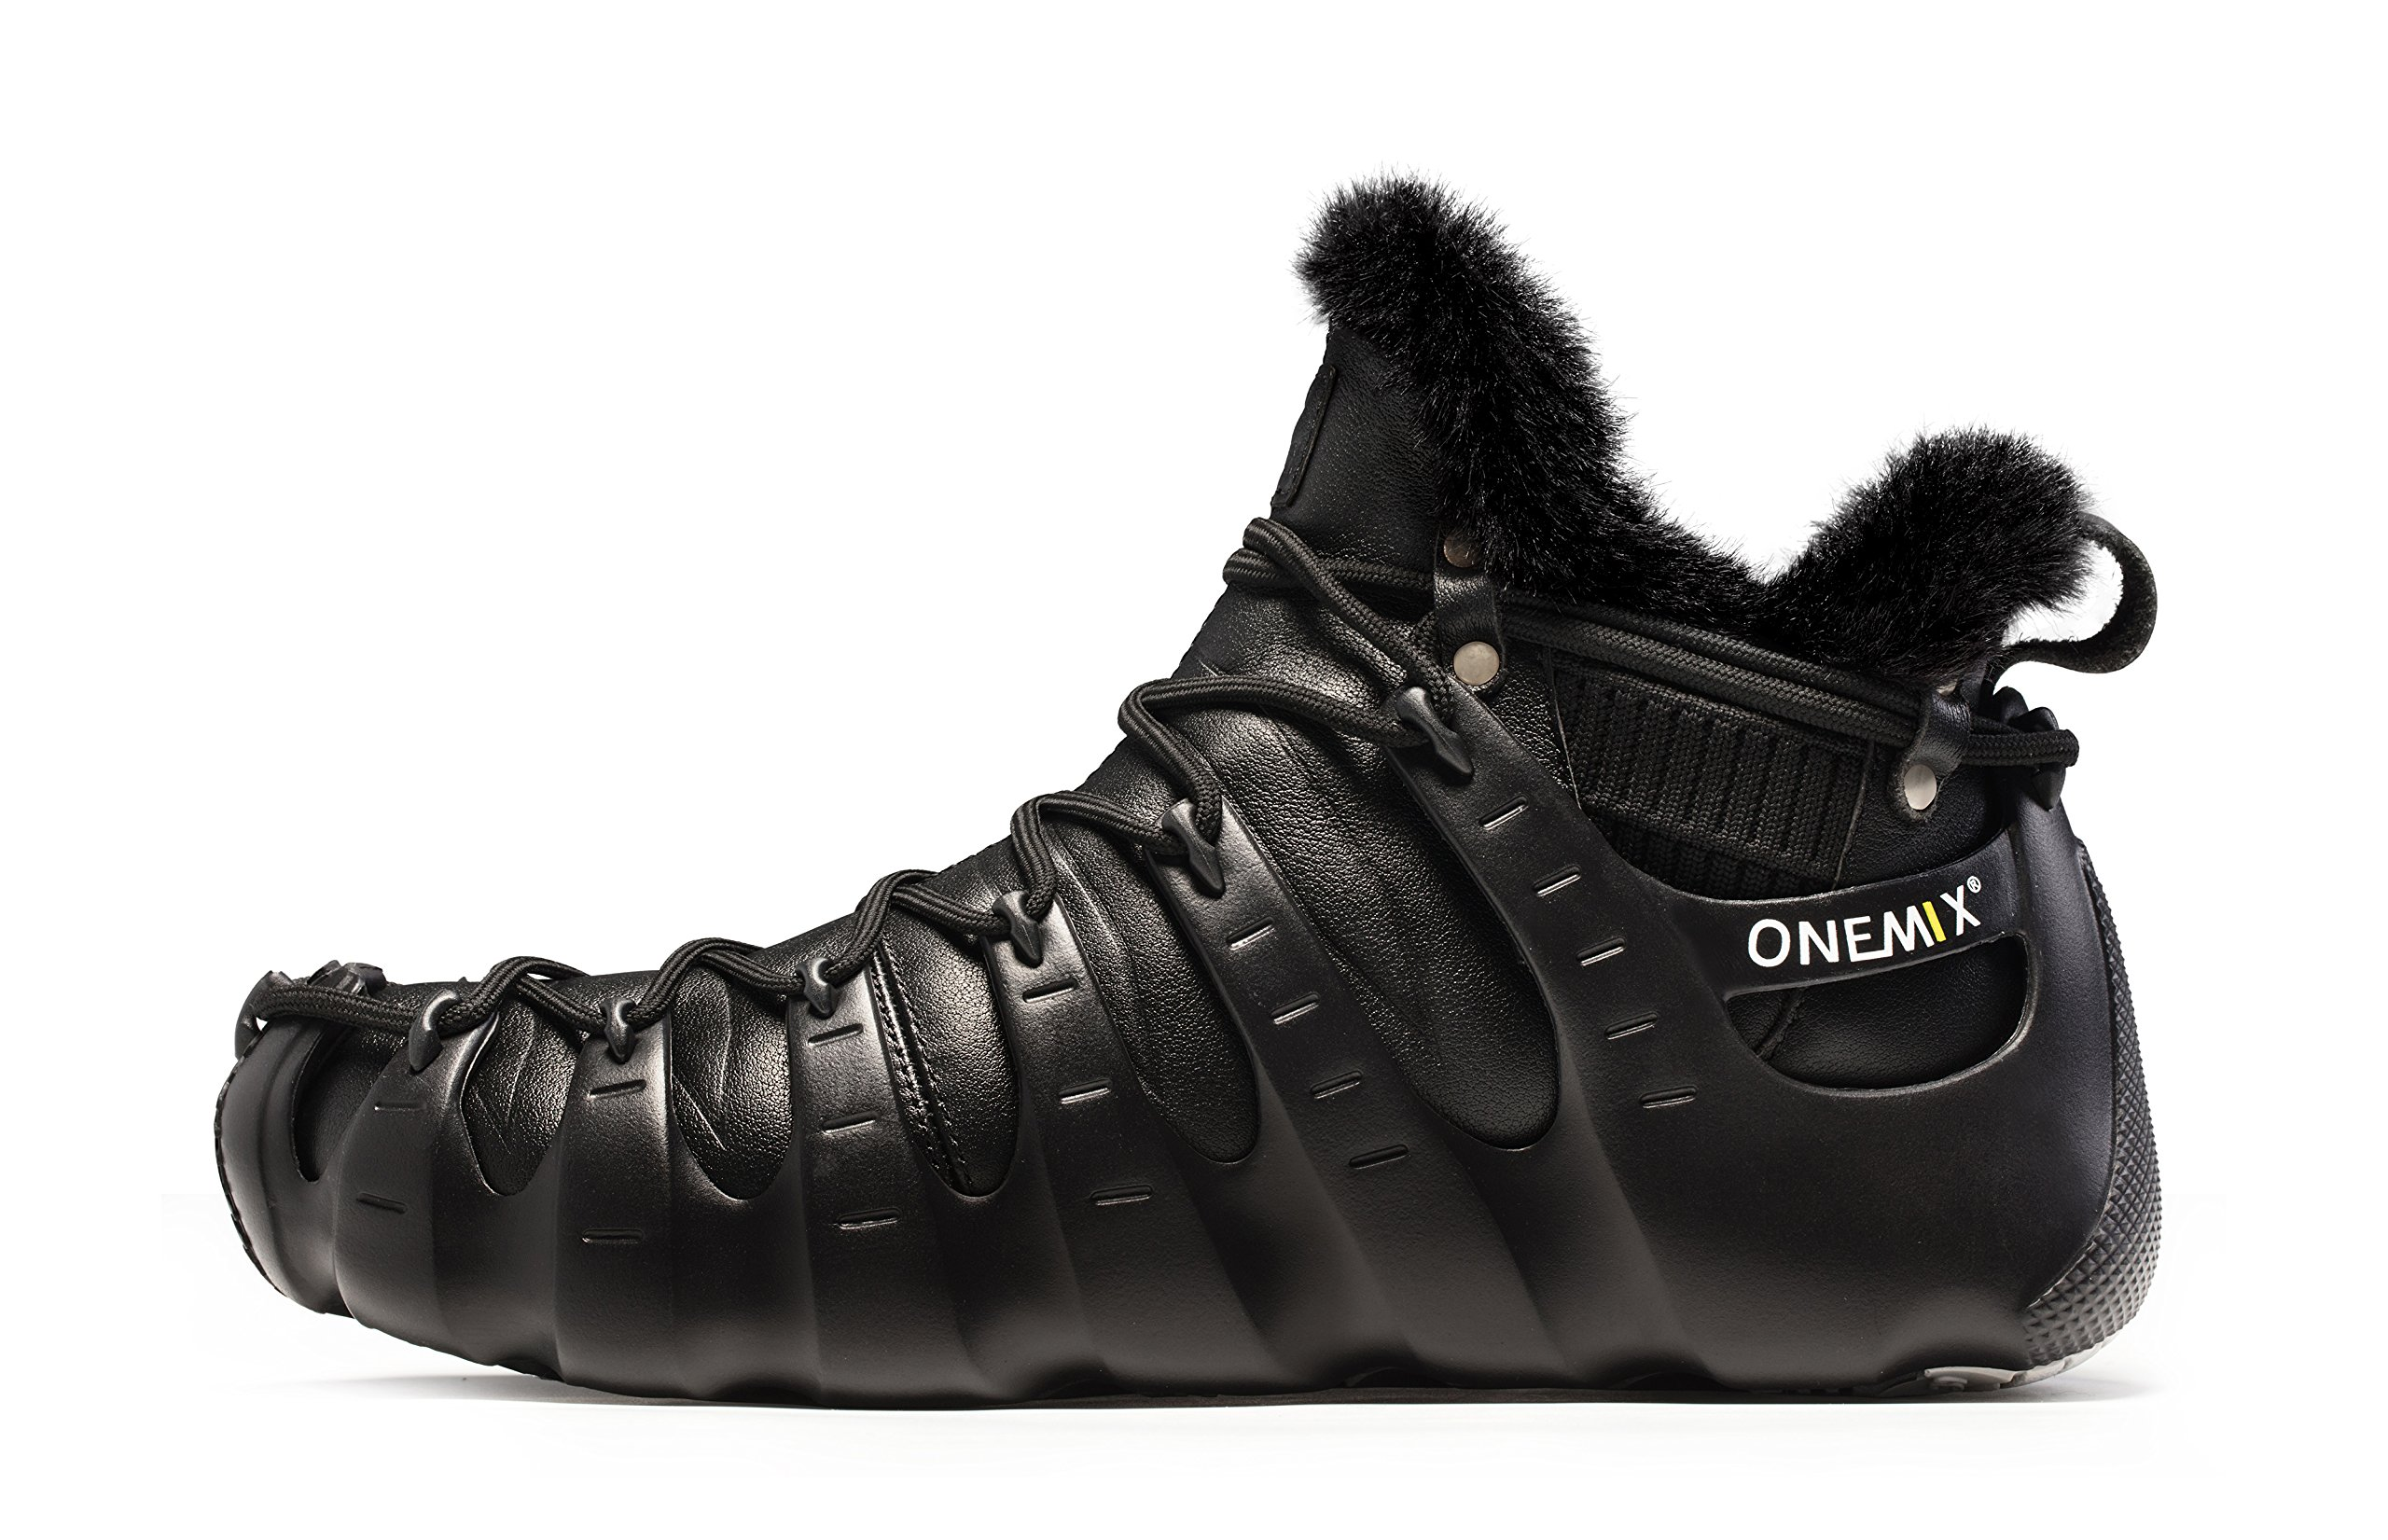 Onemix High Winter Sports Boots Fashion Sneakers Three Ways of Wearing Roman Shoes 7 B(M) US 9.84 inch =EUR40